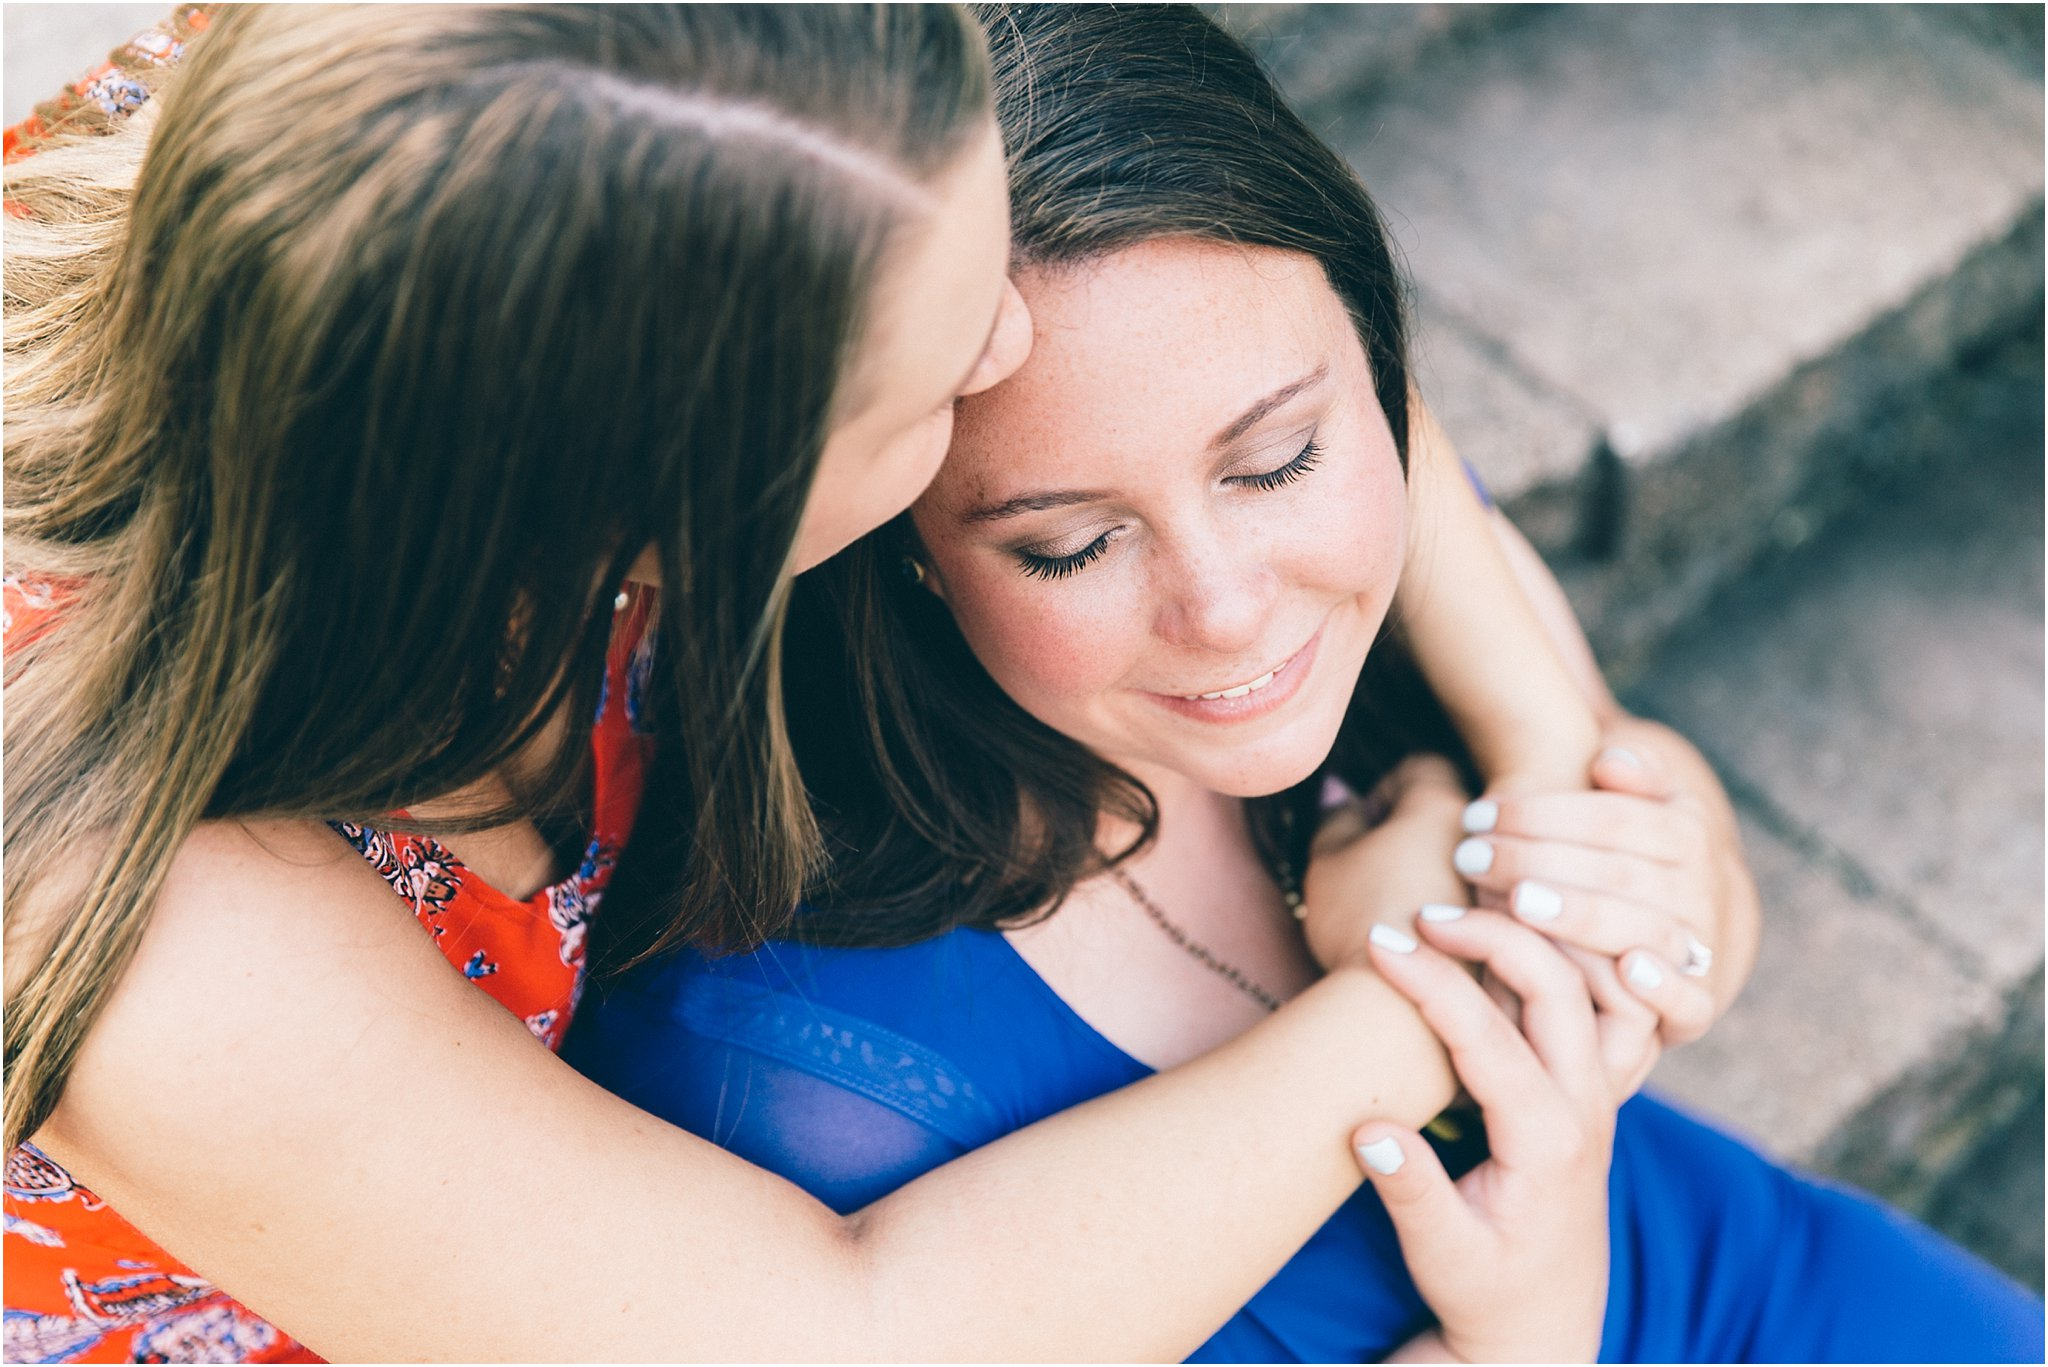 jessica_ryan_photography_longwood_university_engagement_portraits_virginia_0726